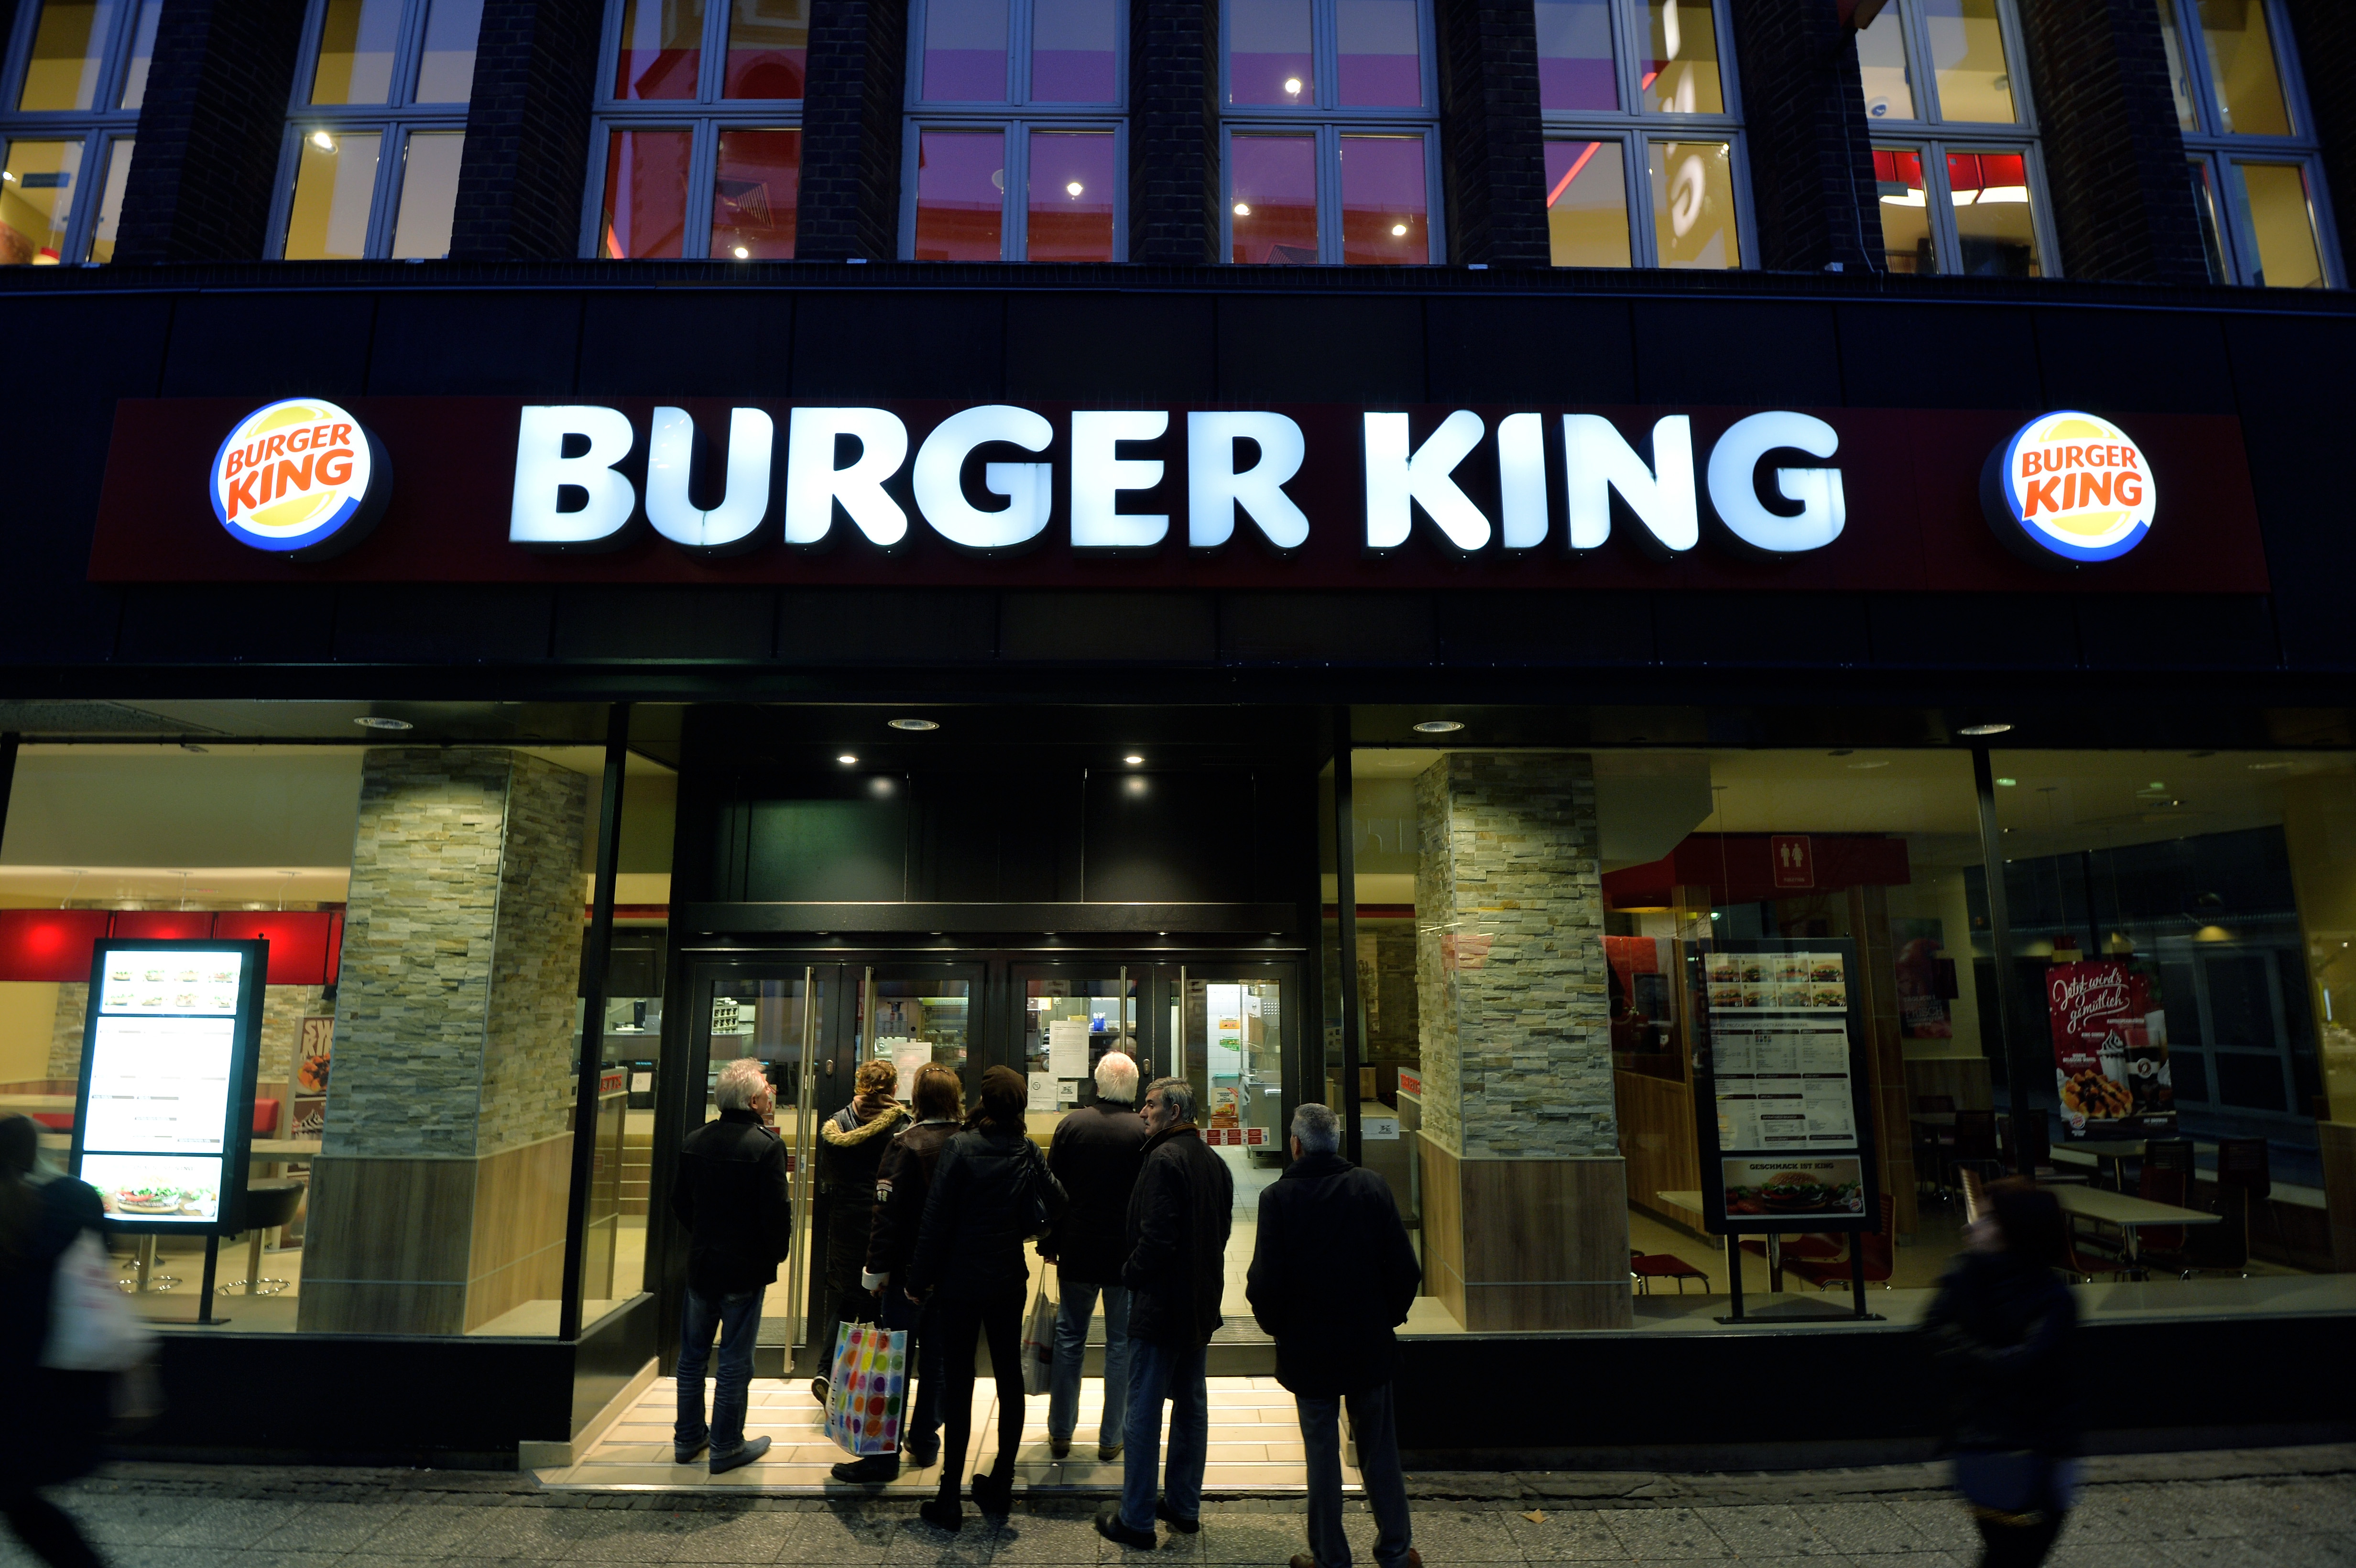 Burger King's Co-Founder Swears Executives Aren't 'Making All Kinds of Money'